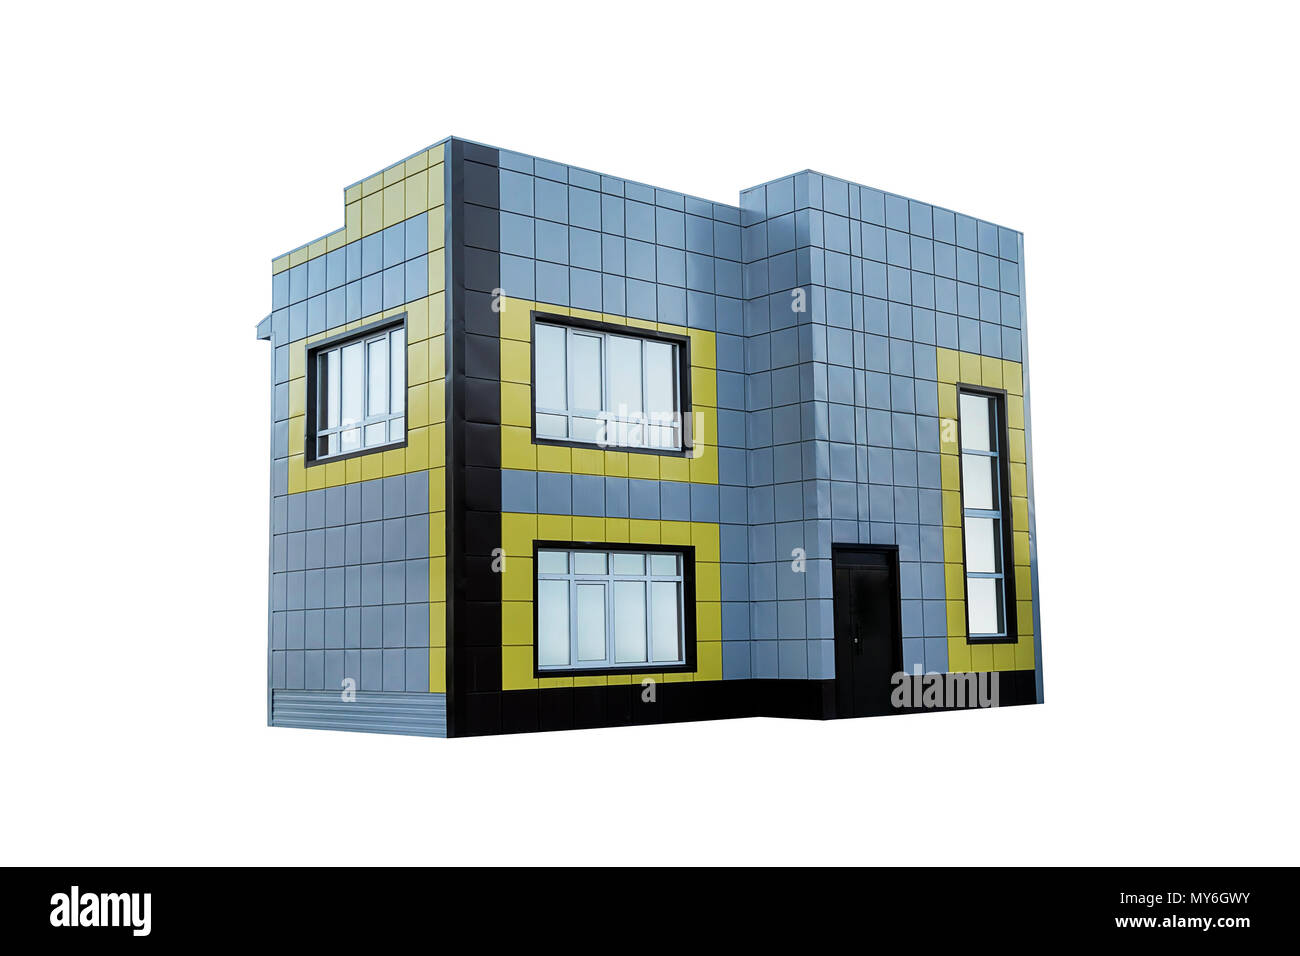 Empty office building on a business park isolated on a white background shop commercial building two story two floor double deck